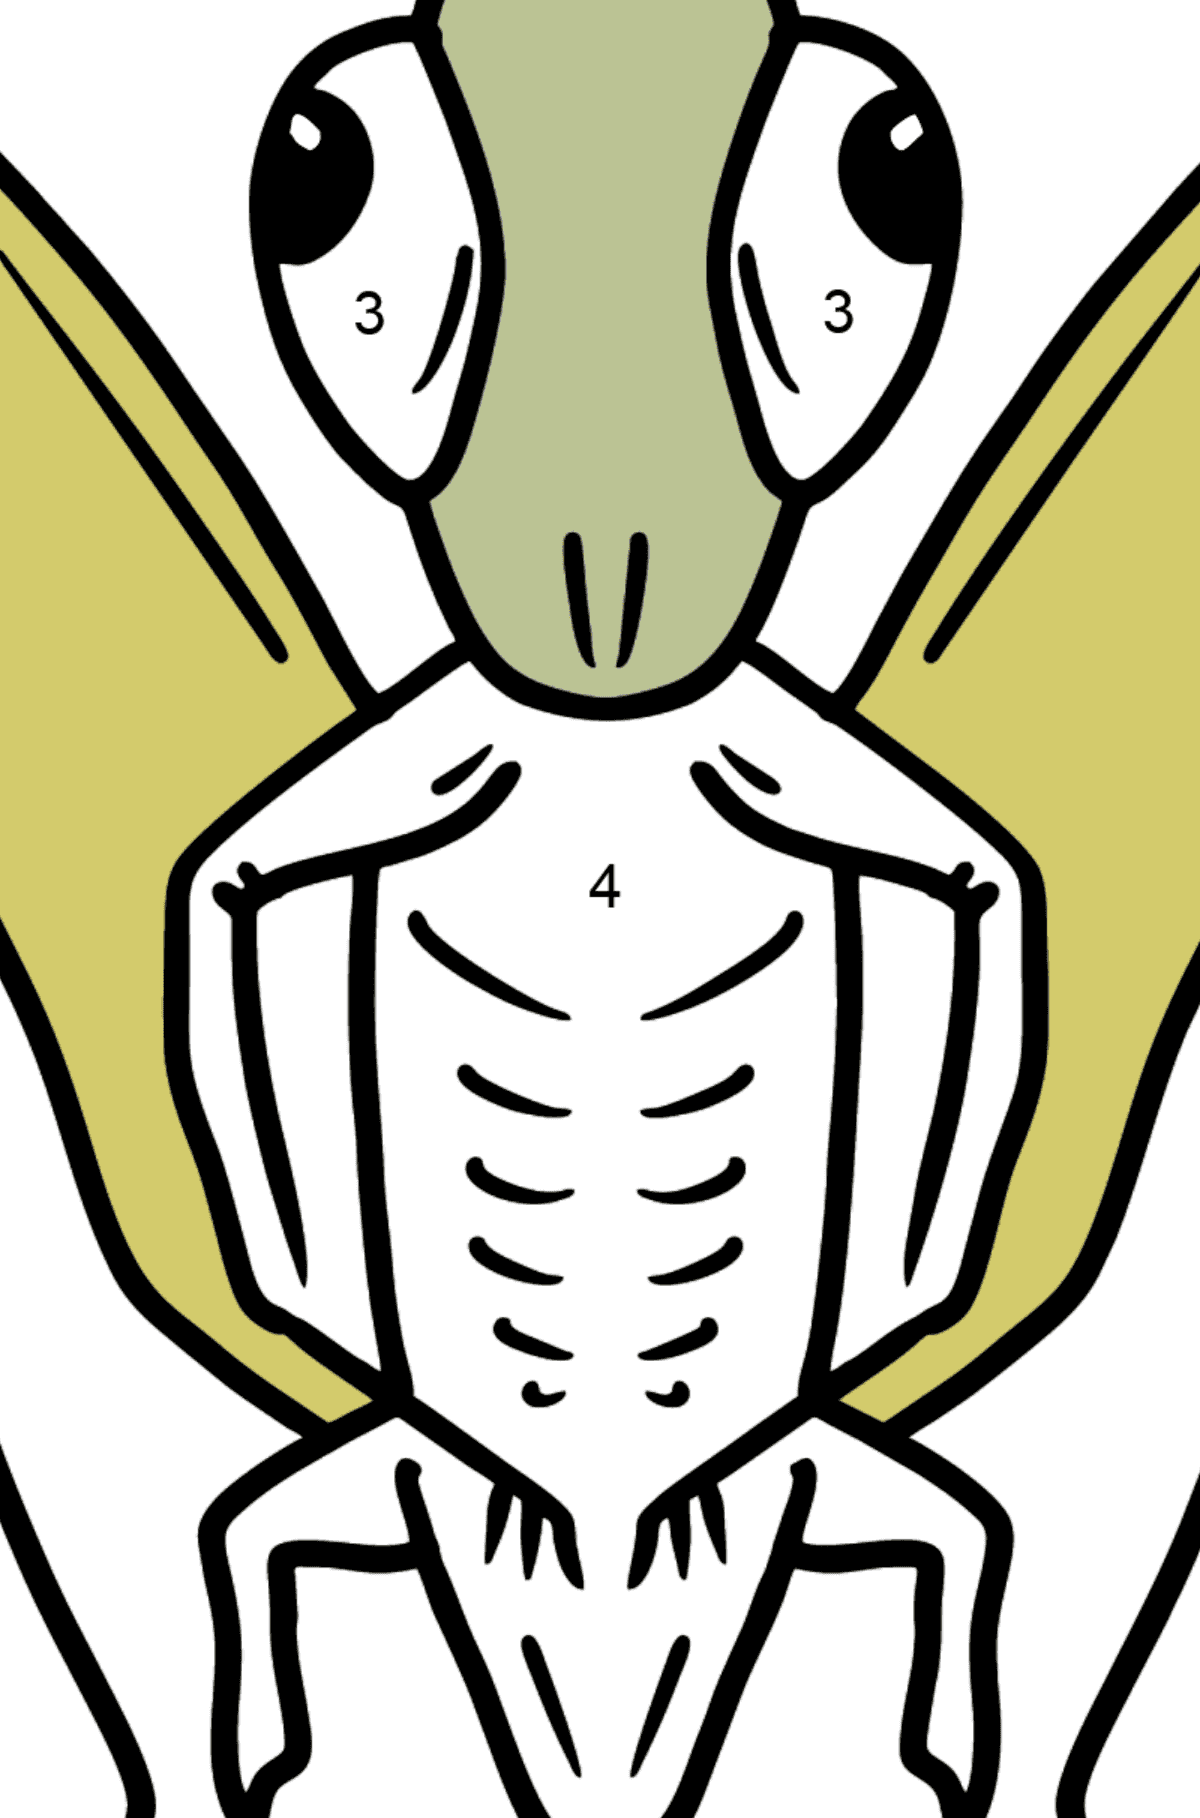 Grasshopper coloring page - Coloring by Numbers for Kids